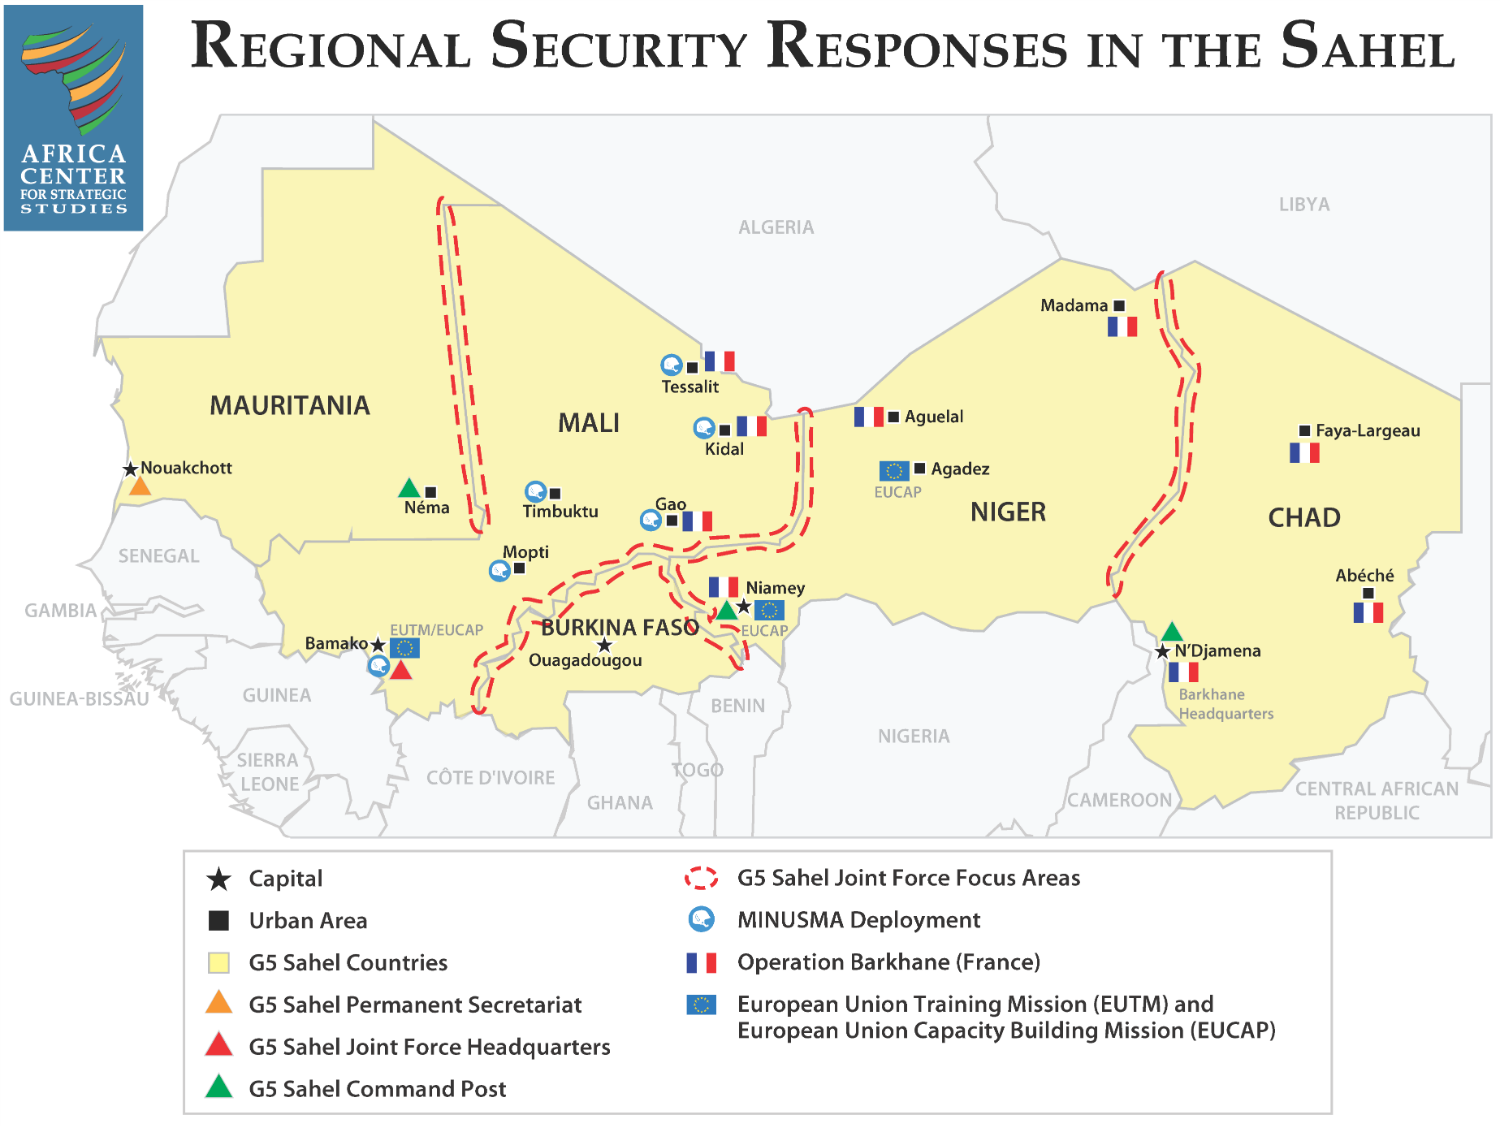 Security Responses in the Sahel Map